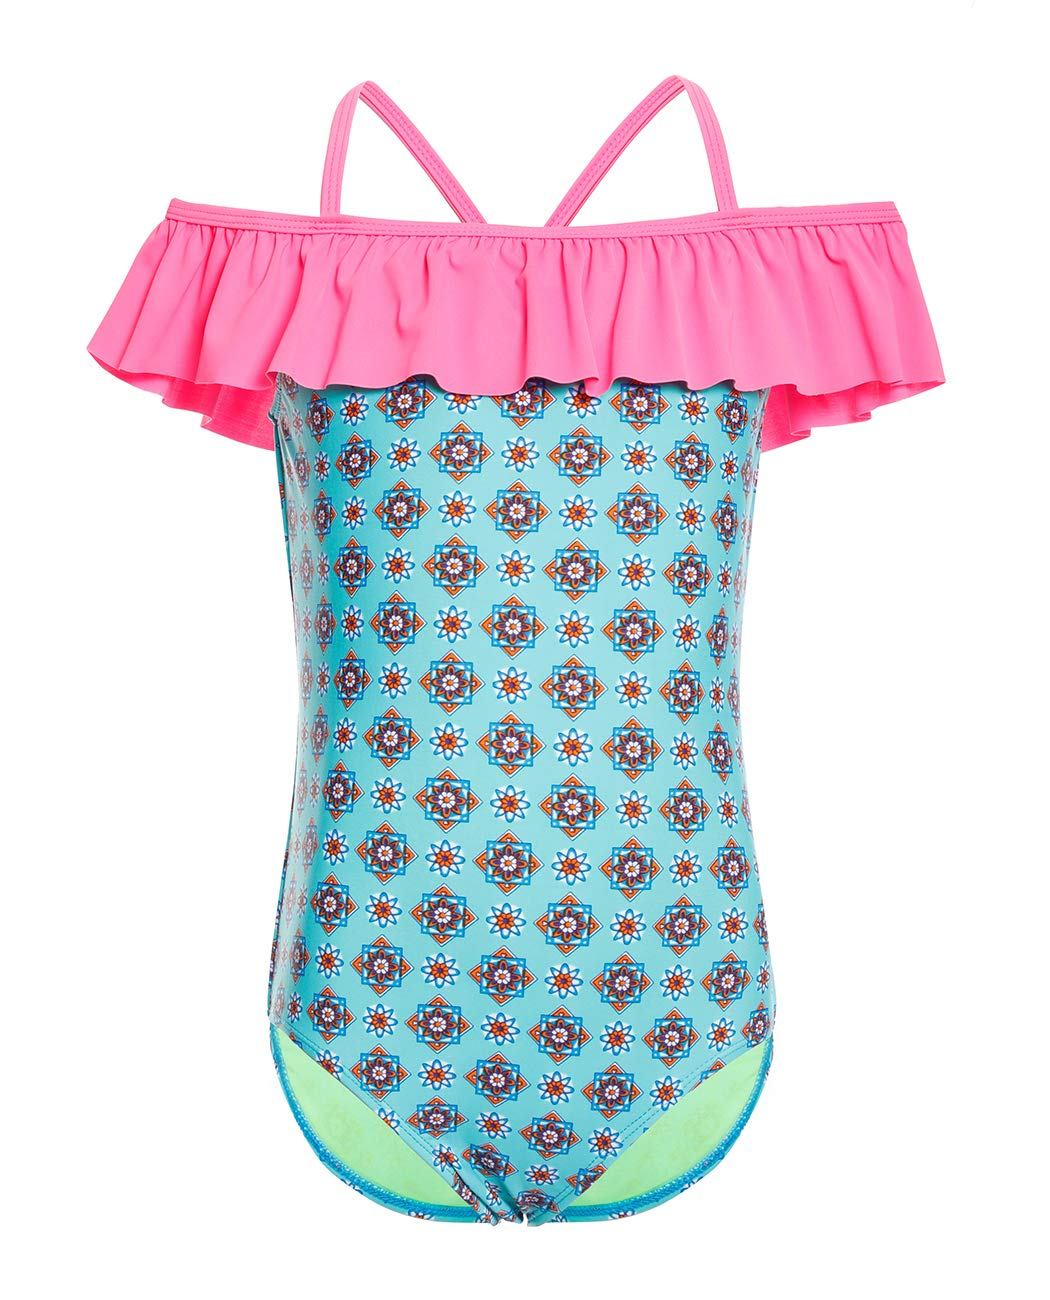 One Piece Bathing Suit for Girls, Sun Protection Beach Wear Size 6-14